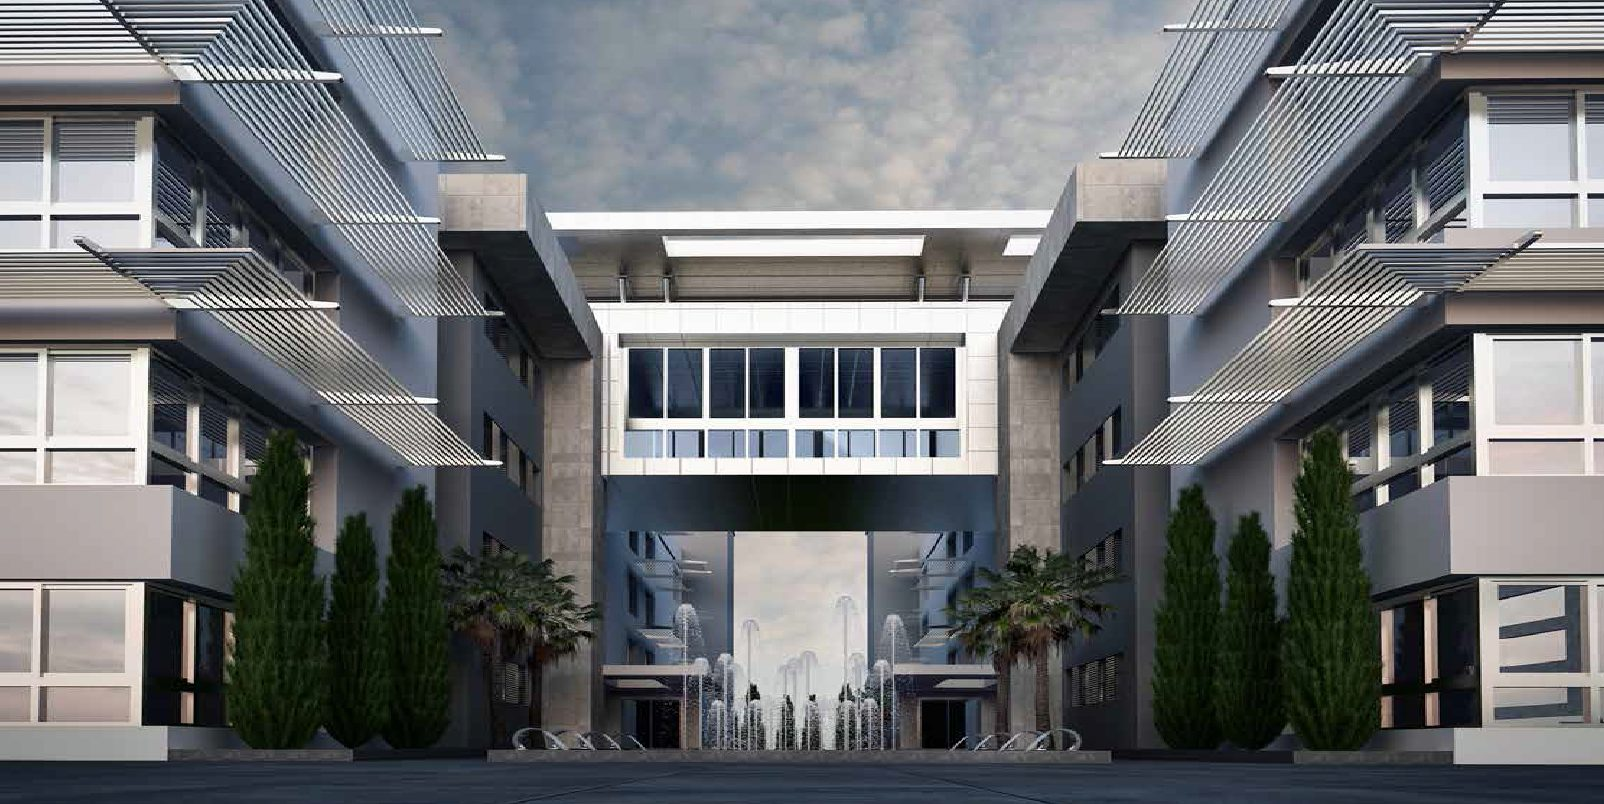 New Giza Compound -New Giza Health Park Medical Clinics For Sale - New Giza -New Giza Medical Clinics - Clinics For Sale - 8 Gates Real Estate Egypt